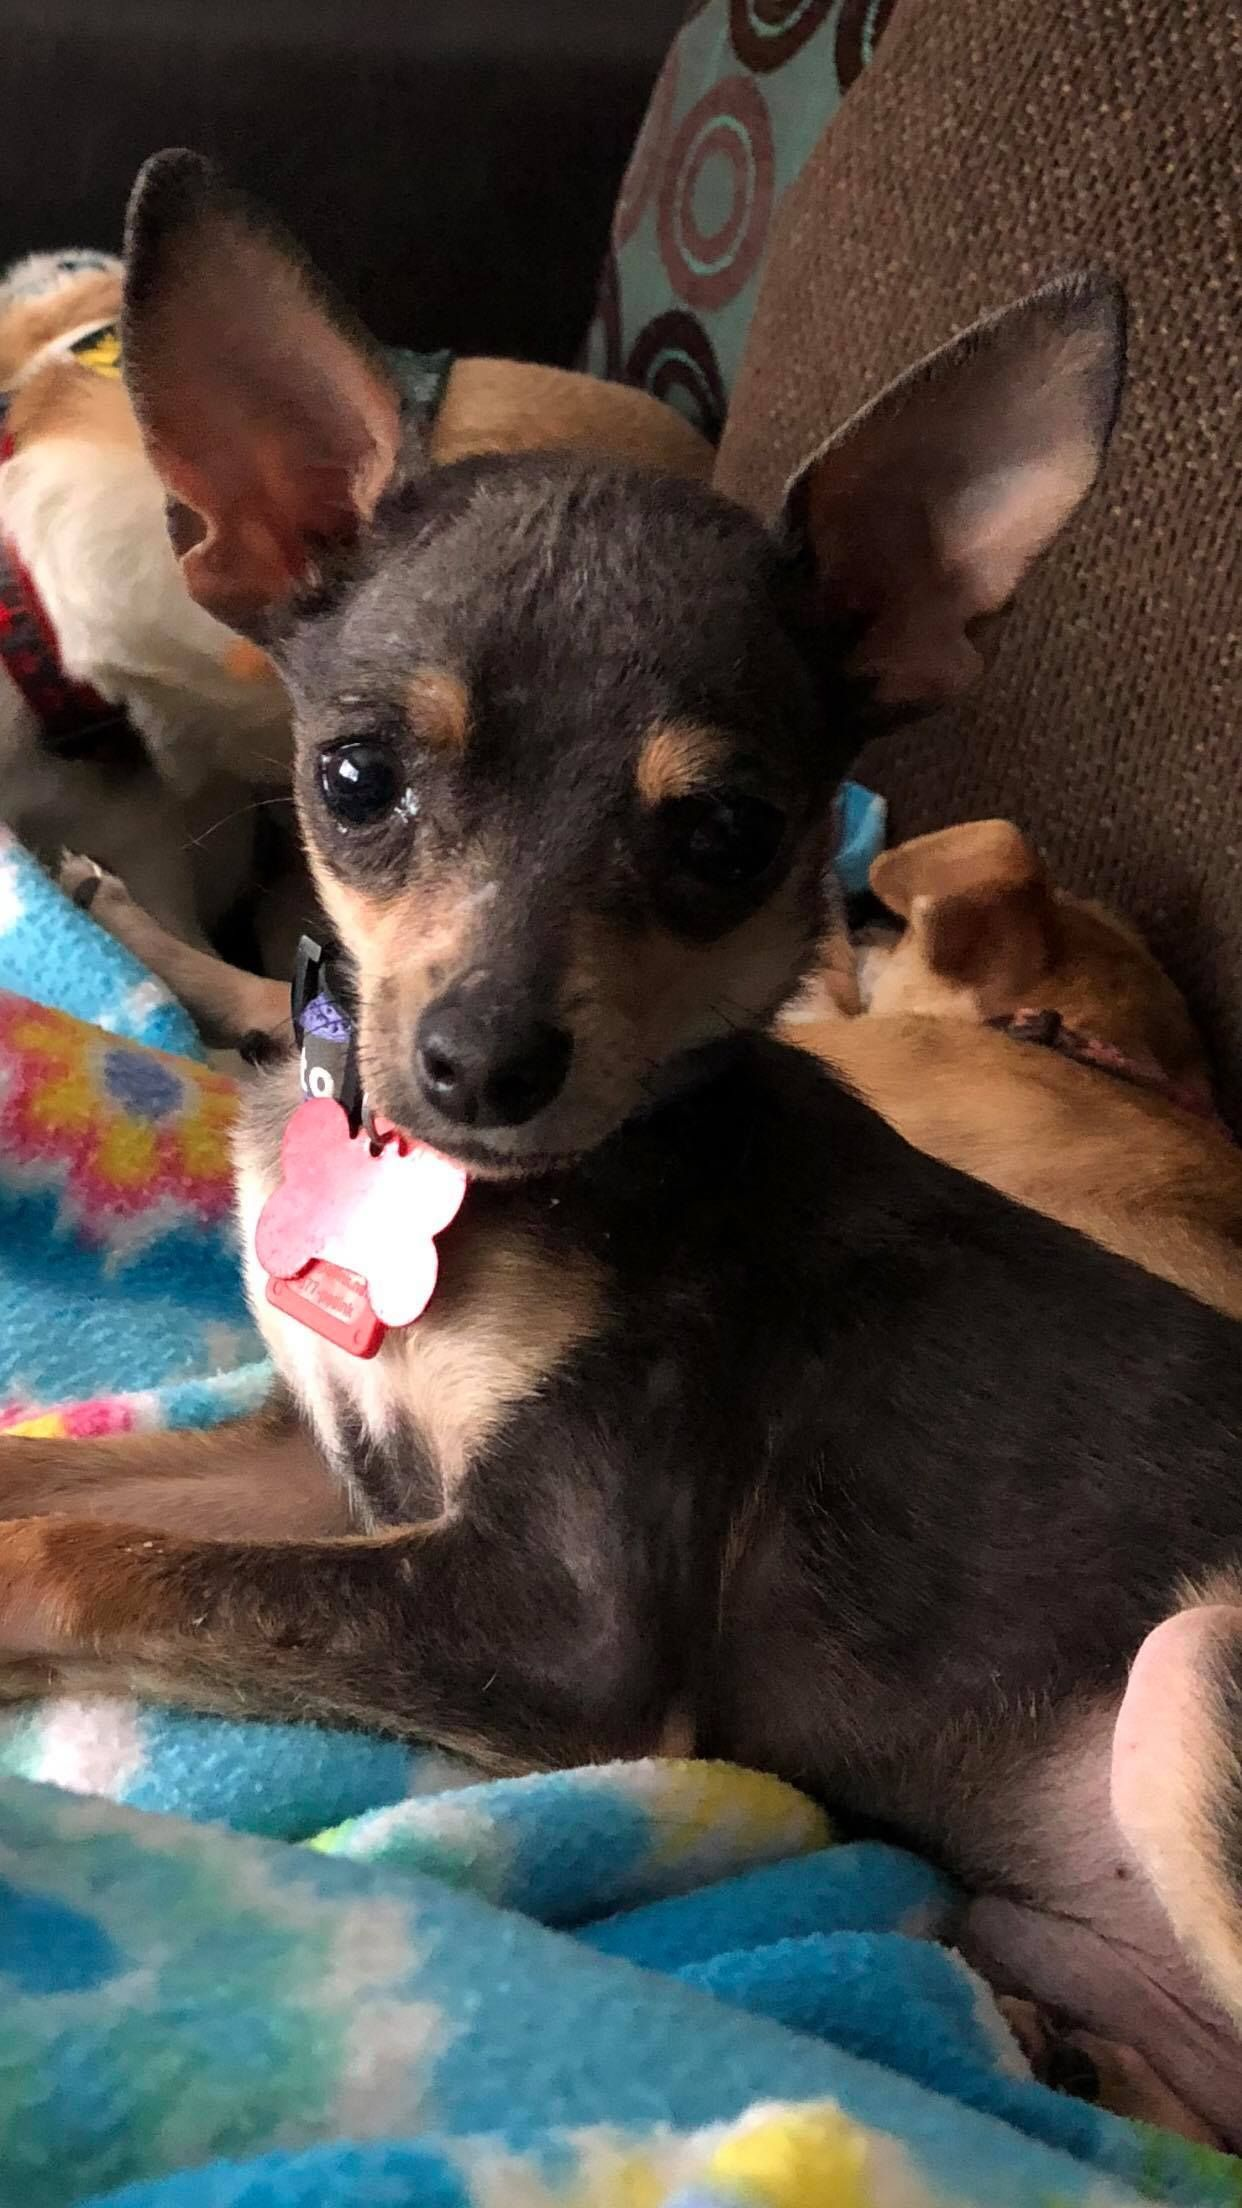 Chihuahua Dog For Adoption In Maple Grove Mn Adn 803564 On Puppyfinder Com Gender Male Age Baby Dog Adoption Chihuahua Puppies Chihuahua Dogs